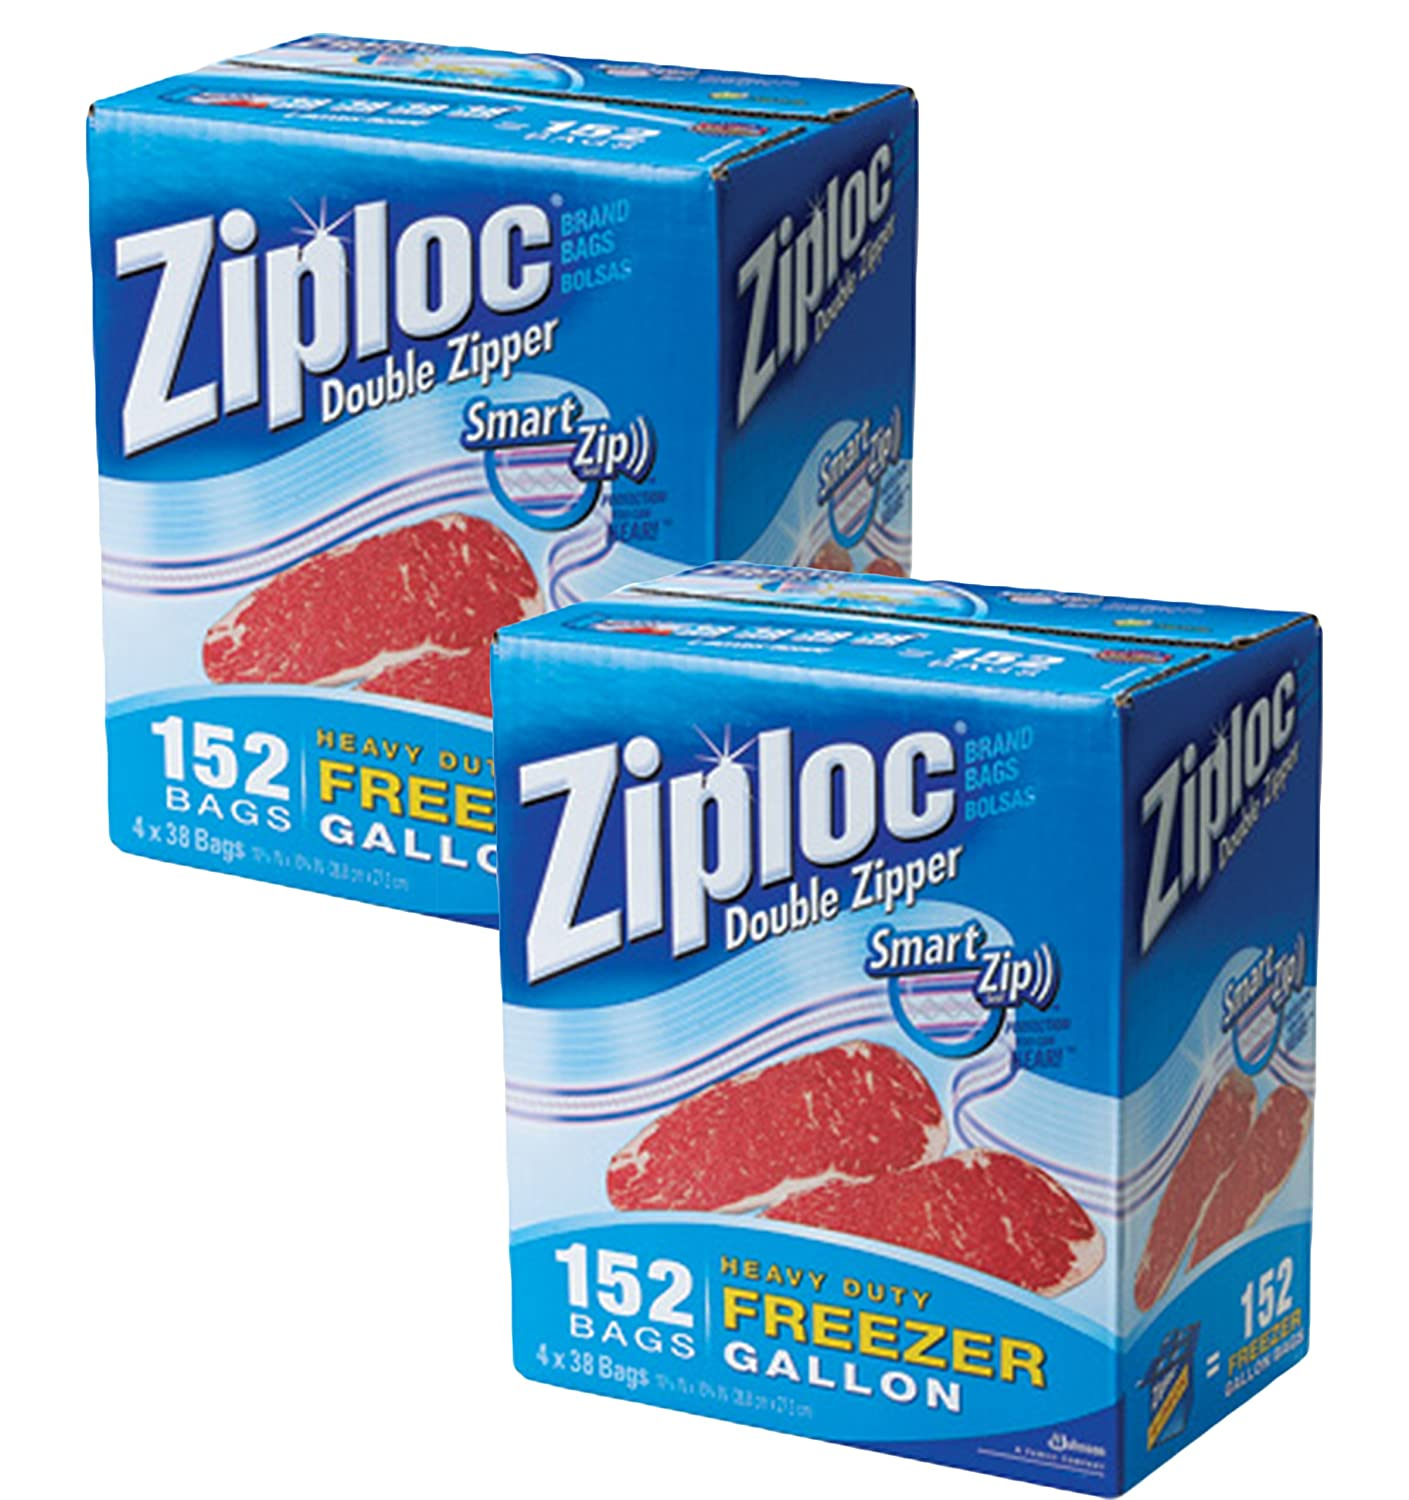 Ziploc Double Zipper Gallon Size Freezer Bags, 152 Count (Pack of 2)…